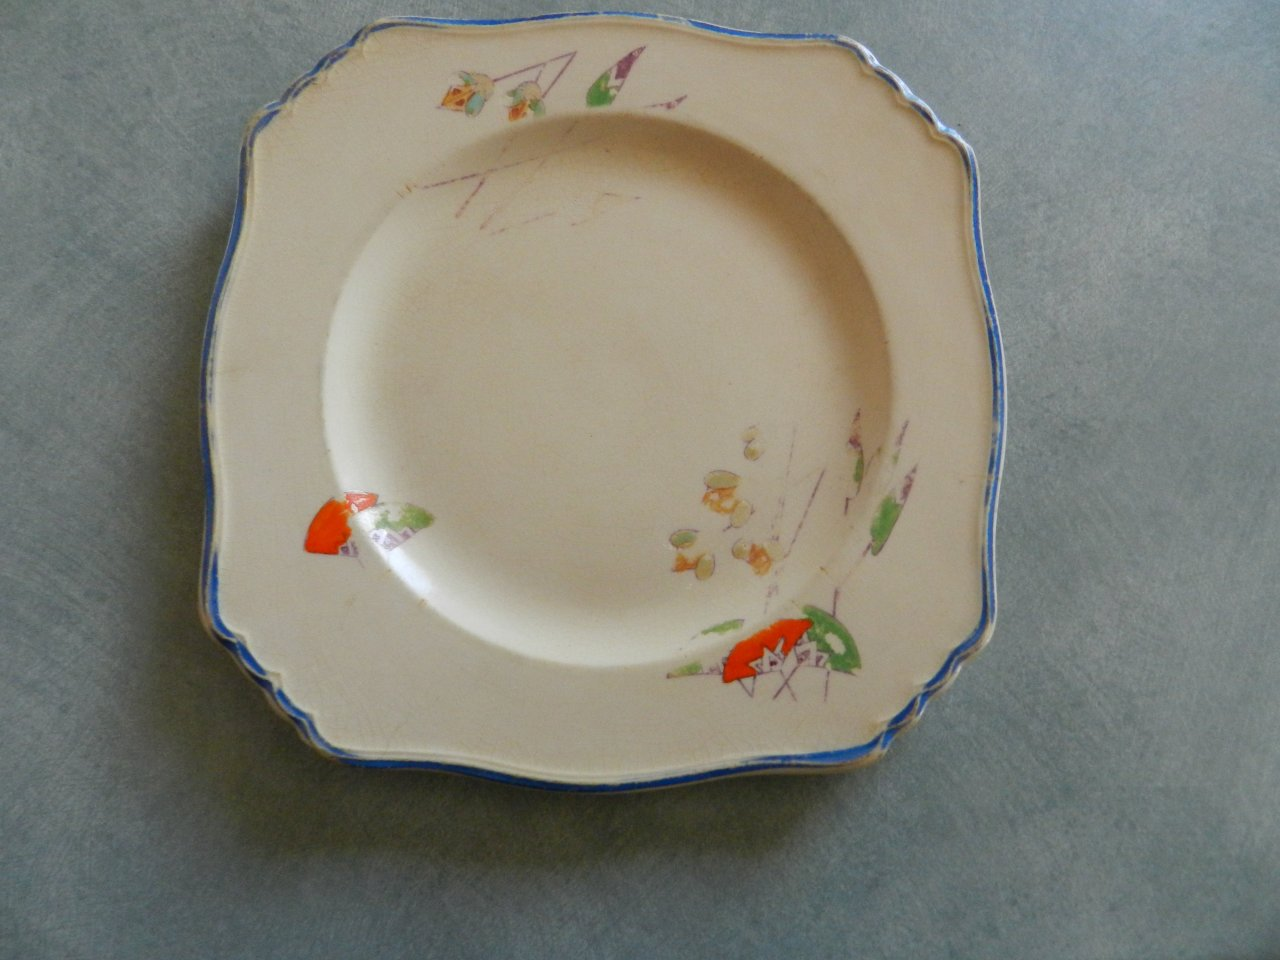 I have a grimwades royal winton ivory england with number 768985 i have a grimwades royal winton ivory england with number 768985 the plate does have chips and artwork is fading can someone tell me how much this is reviewsmspy